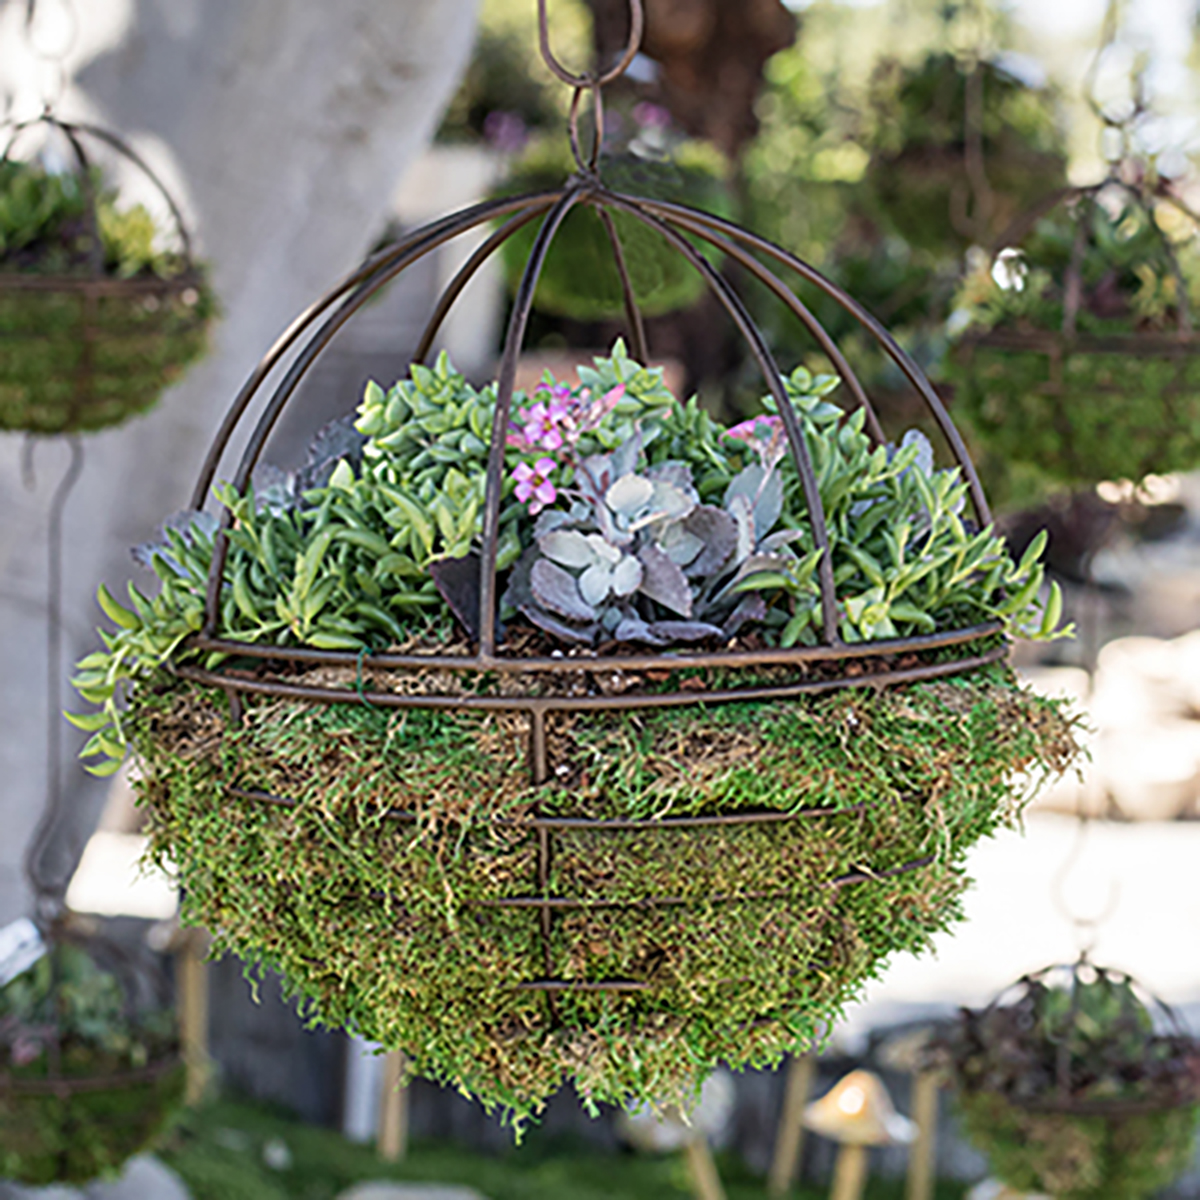 An image of a hanging succulent orb for workshop